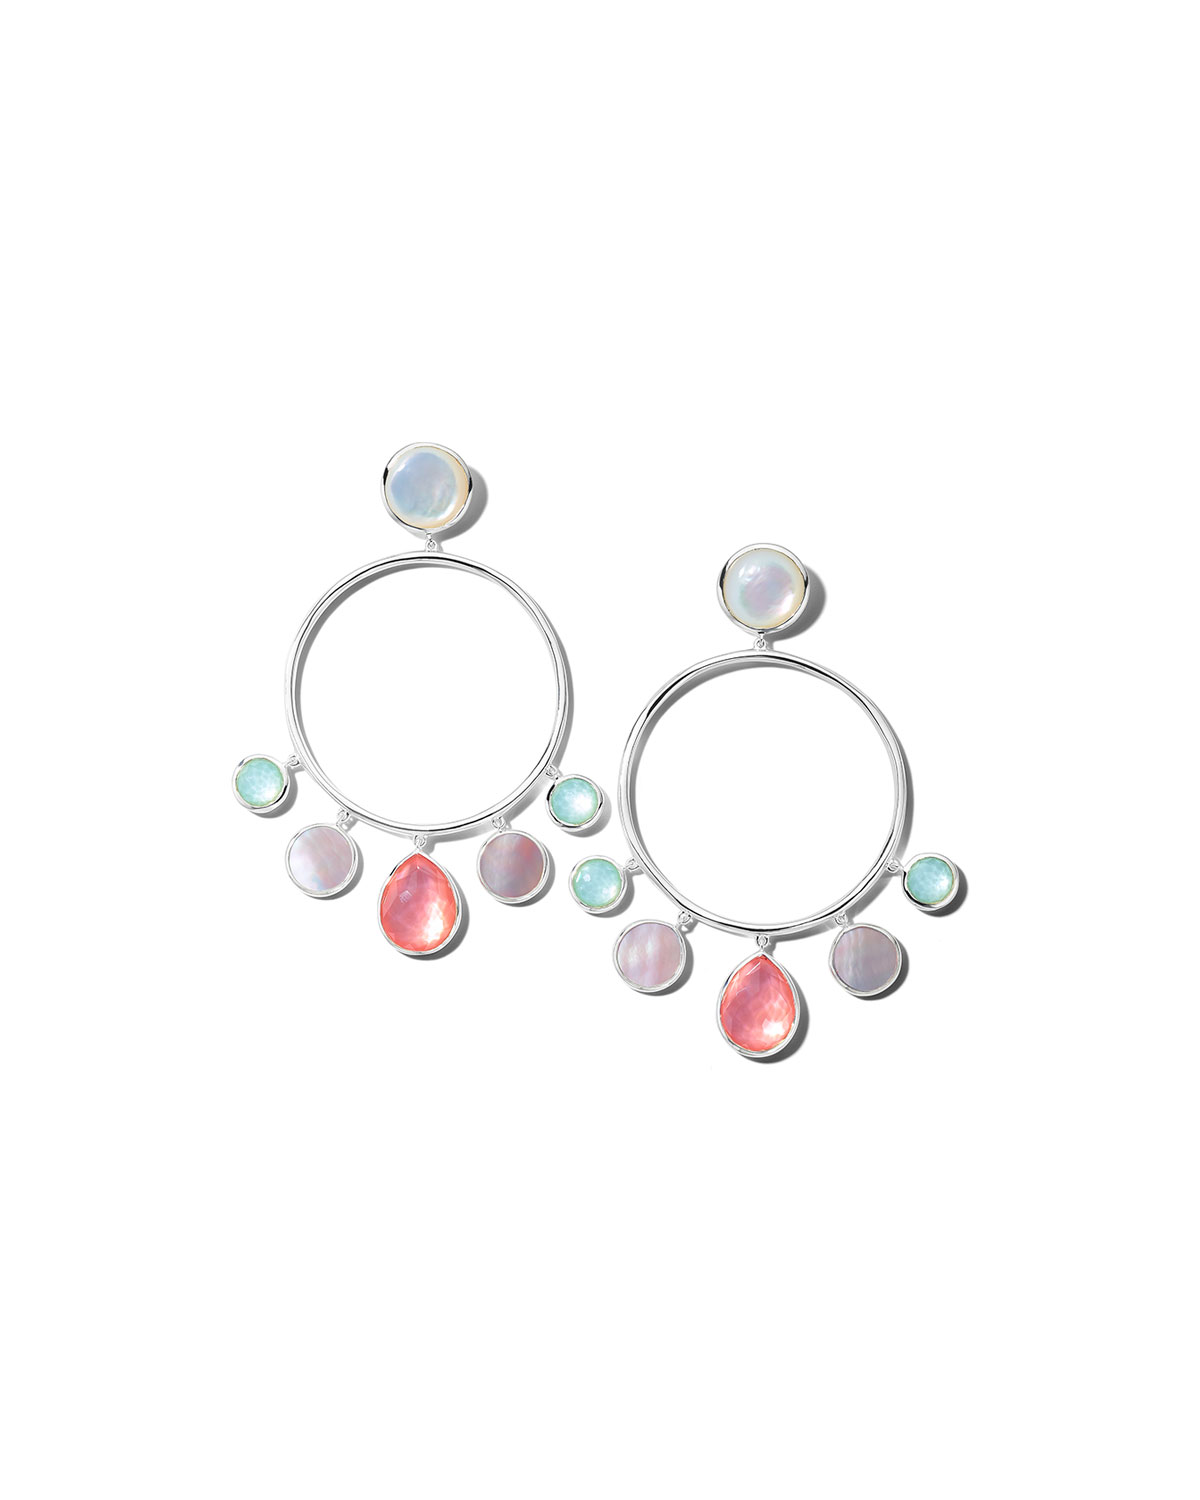 Ippolita Earrings WONDERLAND CIRCULAR CHANDELIER EARRINGS IN SAGUARO